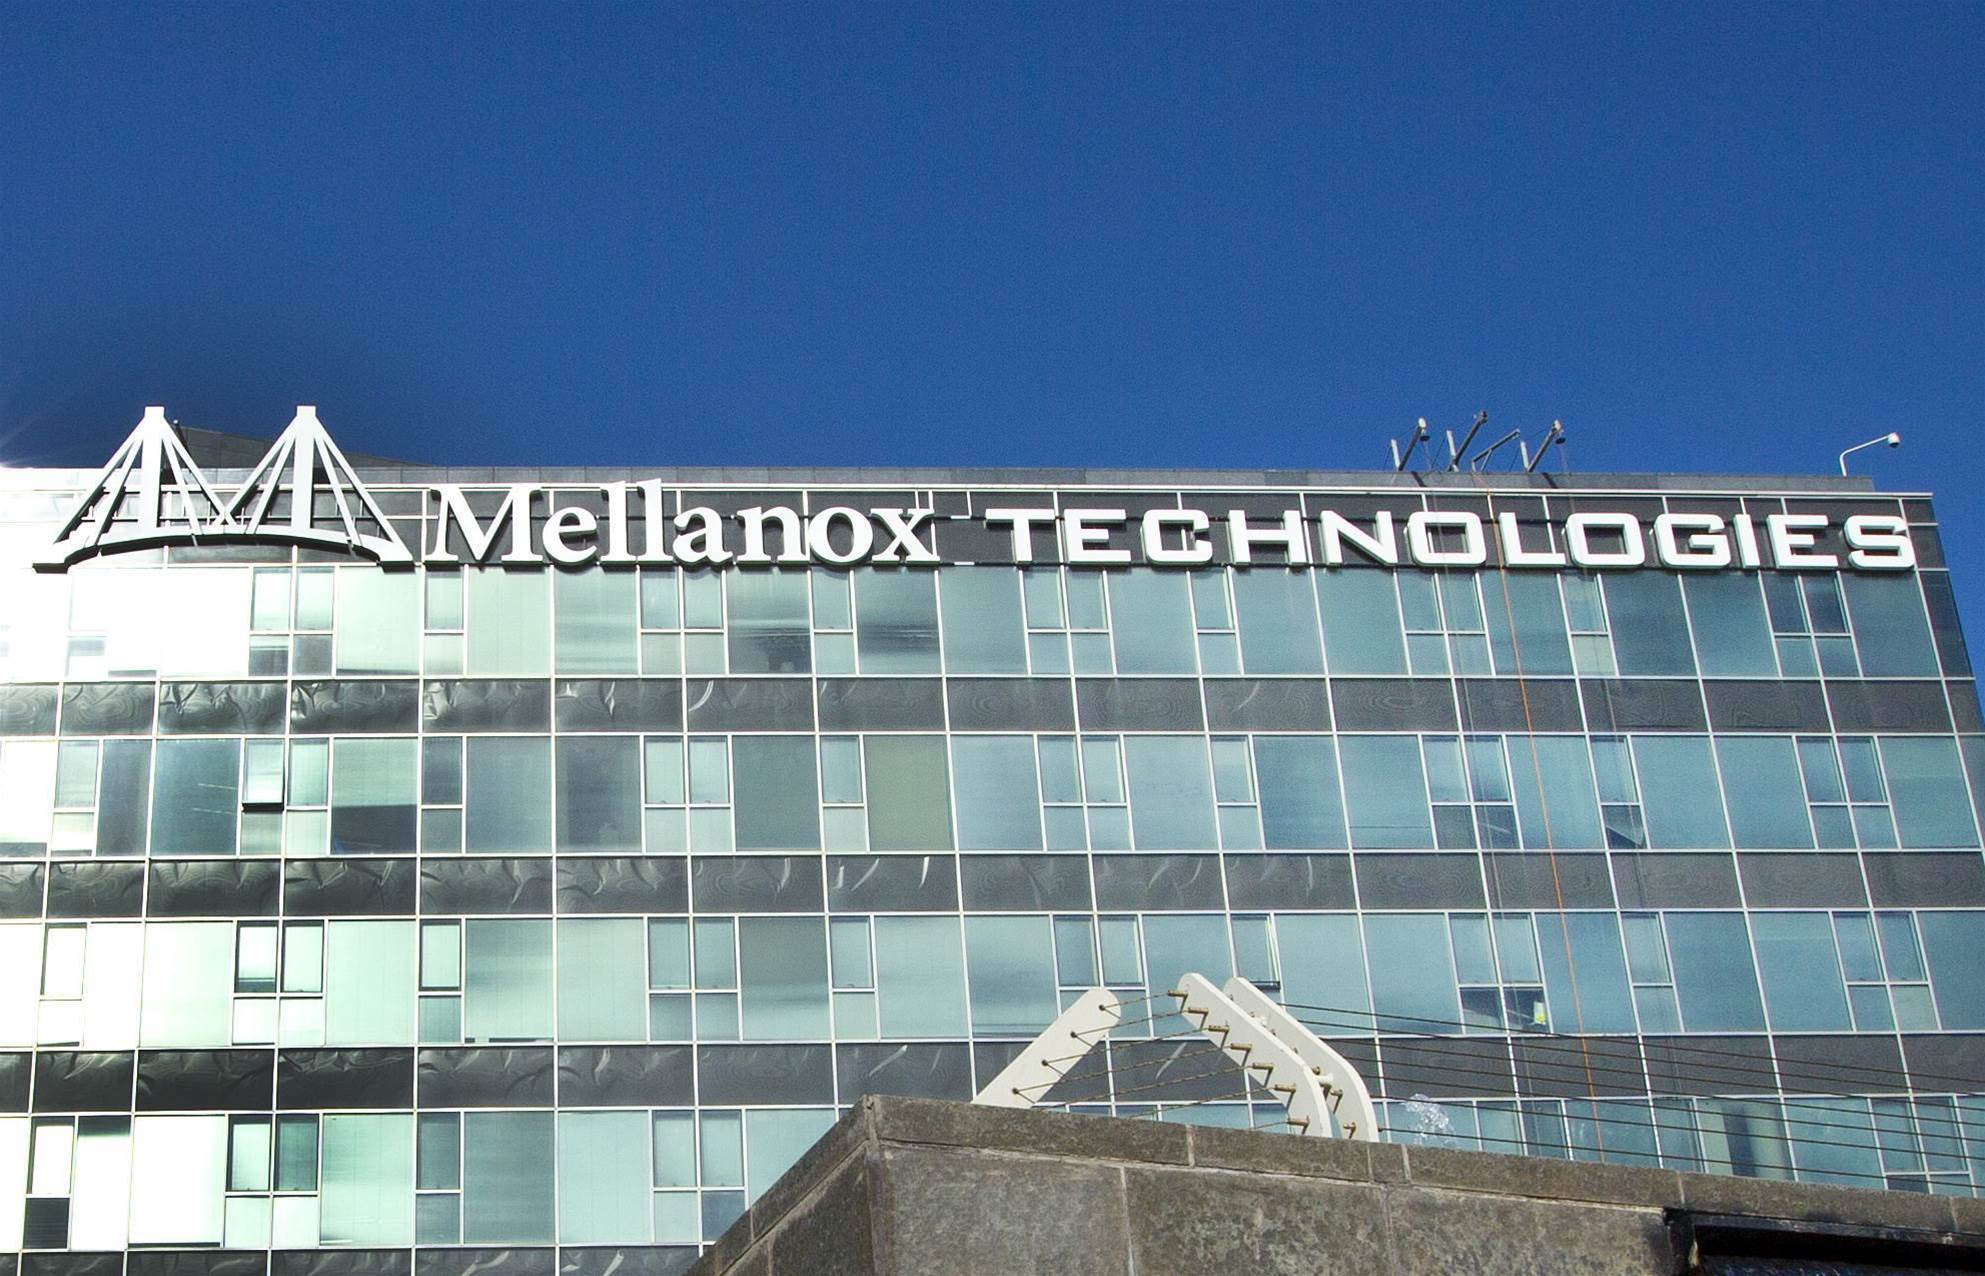 Microsoft reportedly eyeing Mellanox acquisition